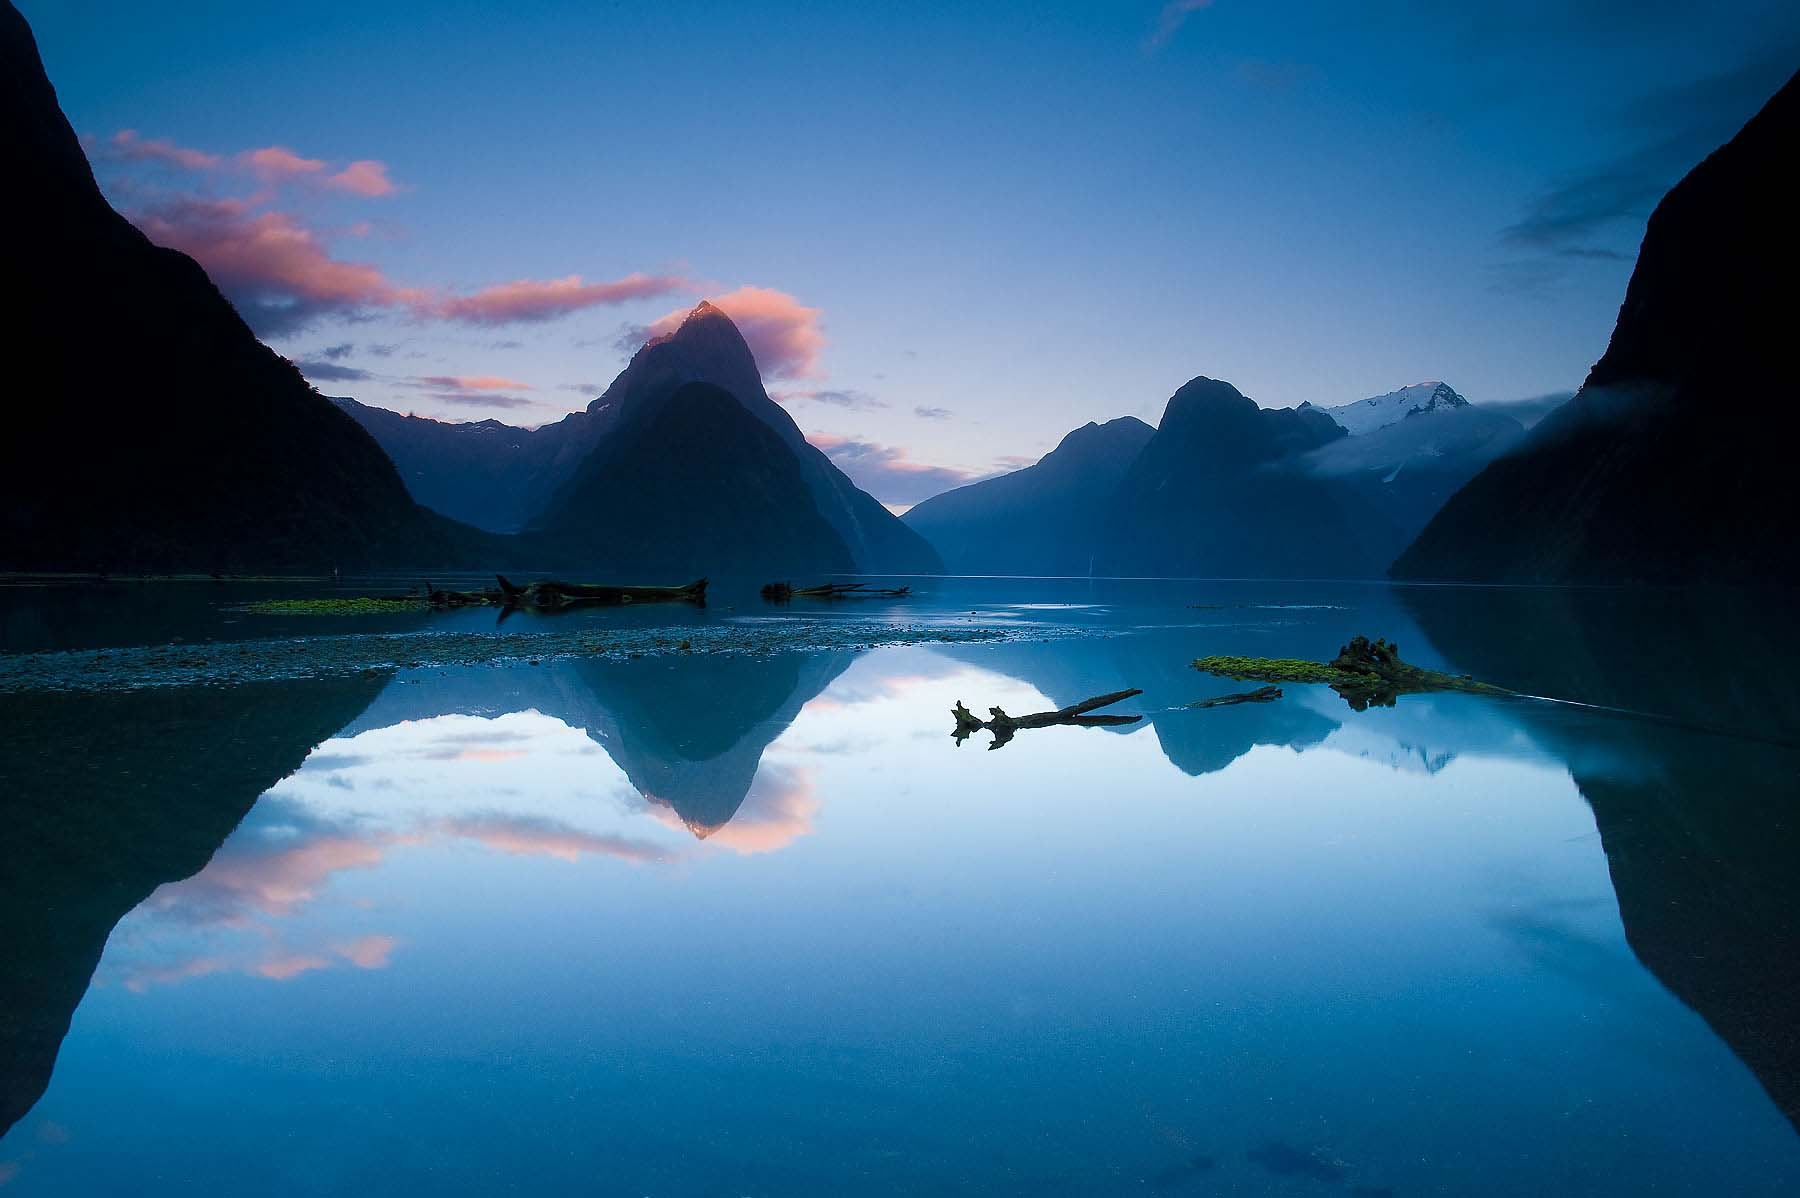 Milford-Sound-Dawn-Fjordland-National-Park-South-Island-New-Zealand